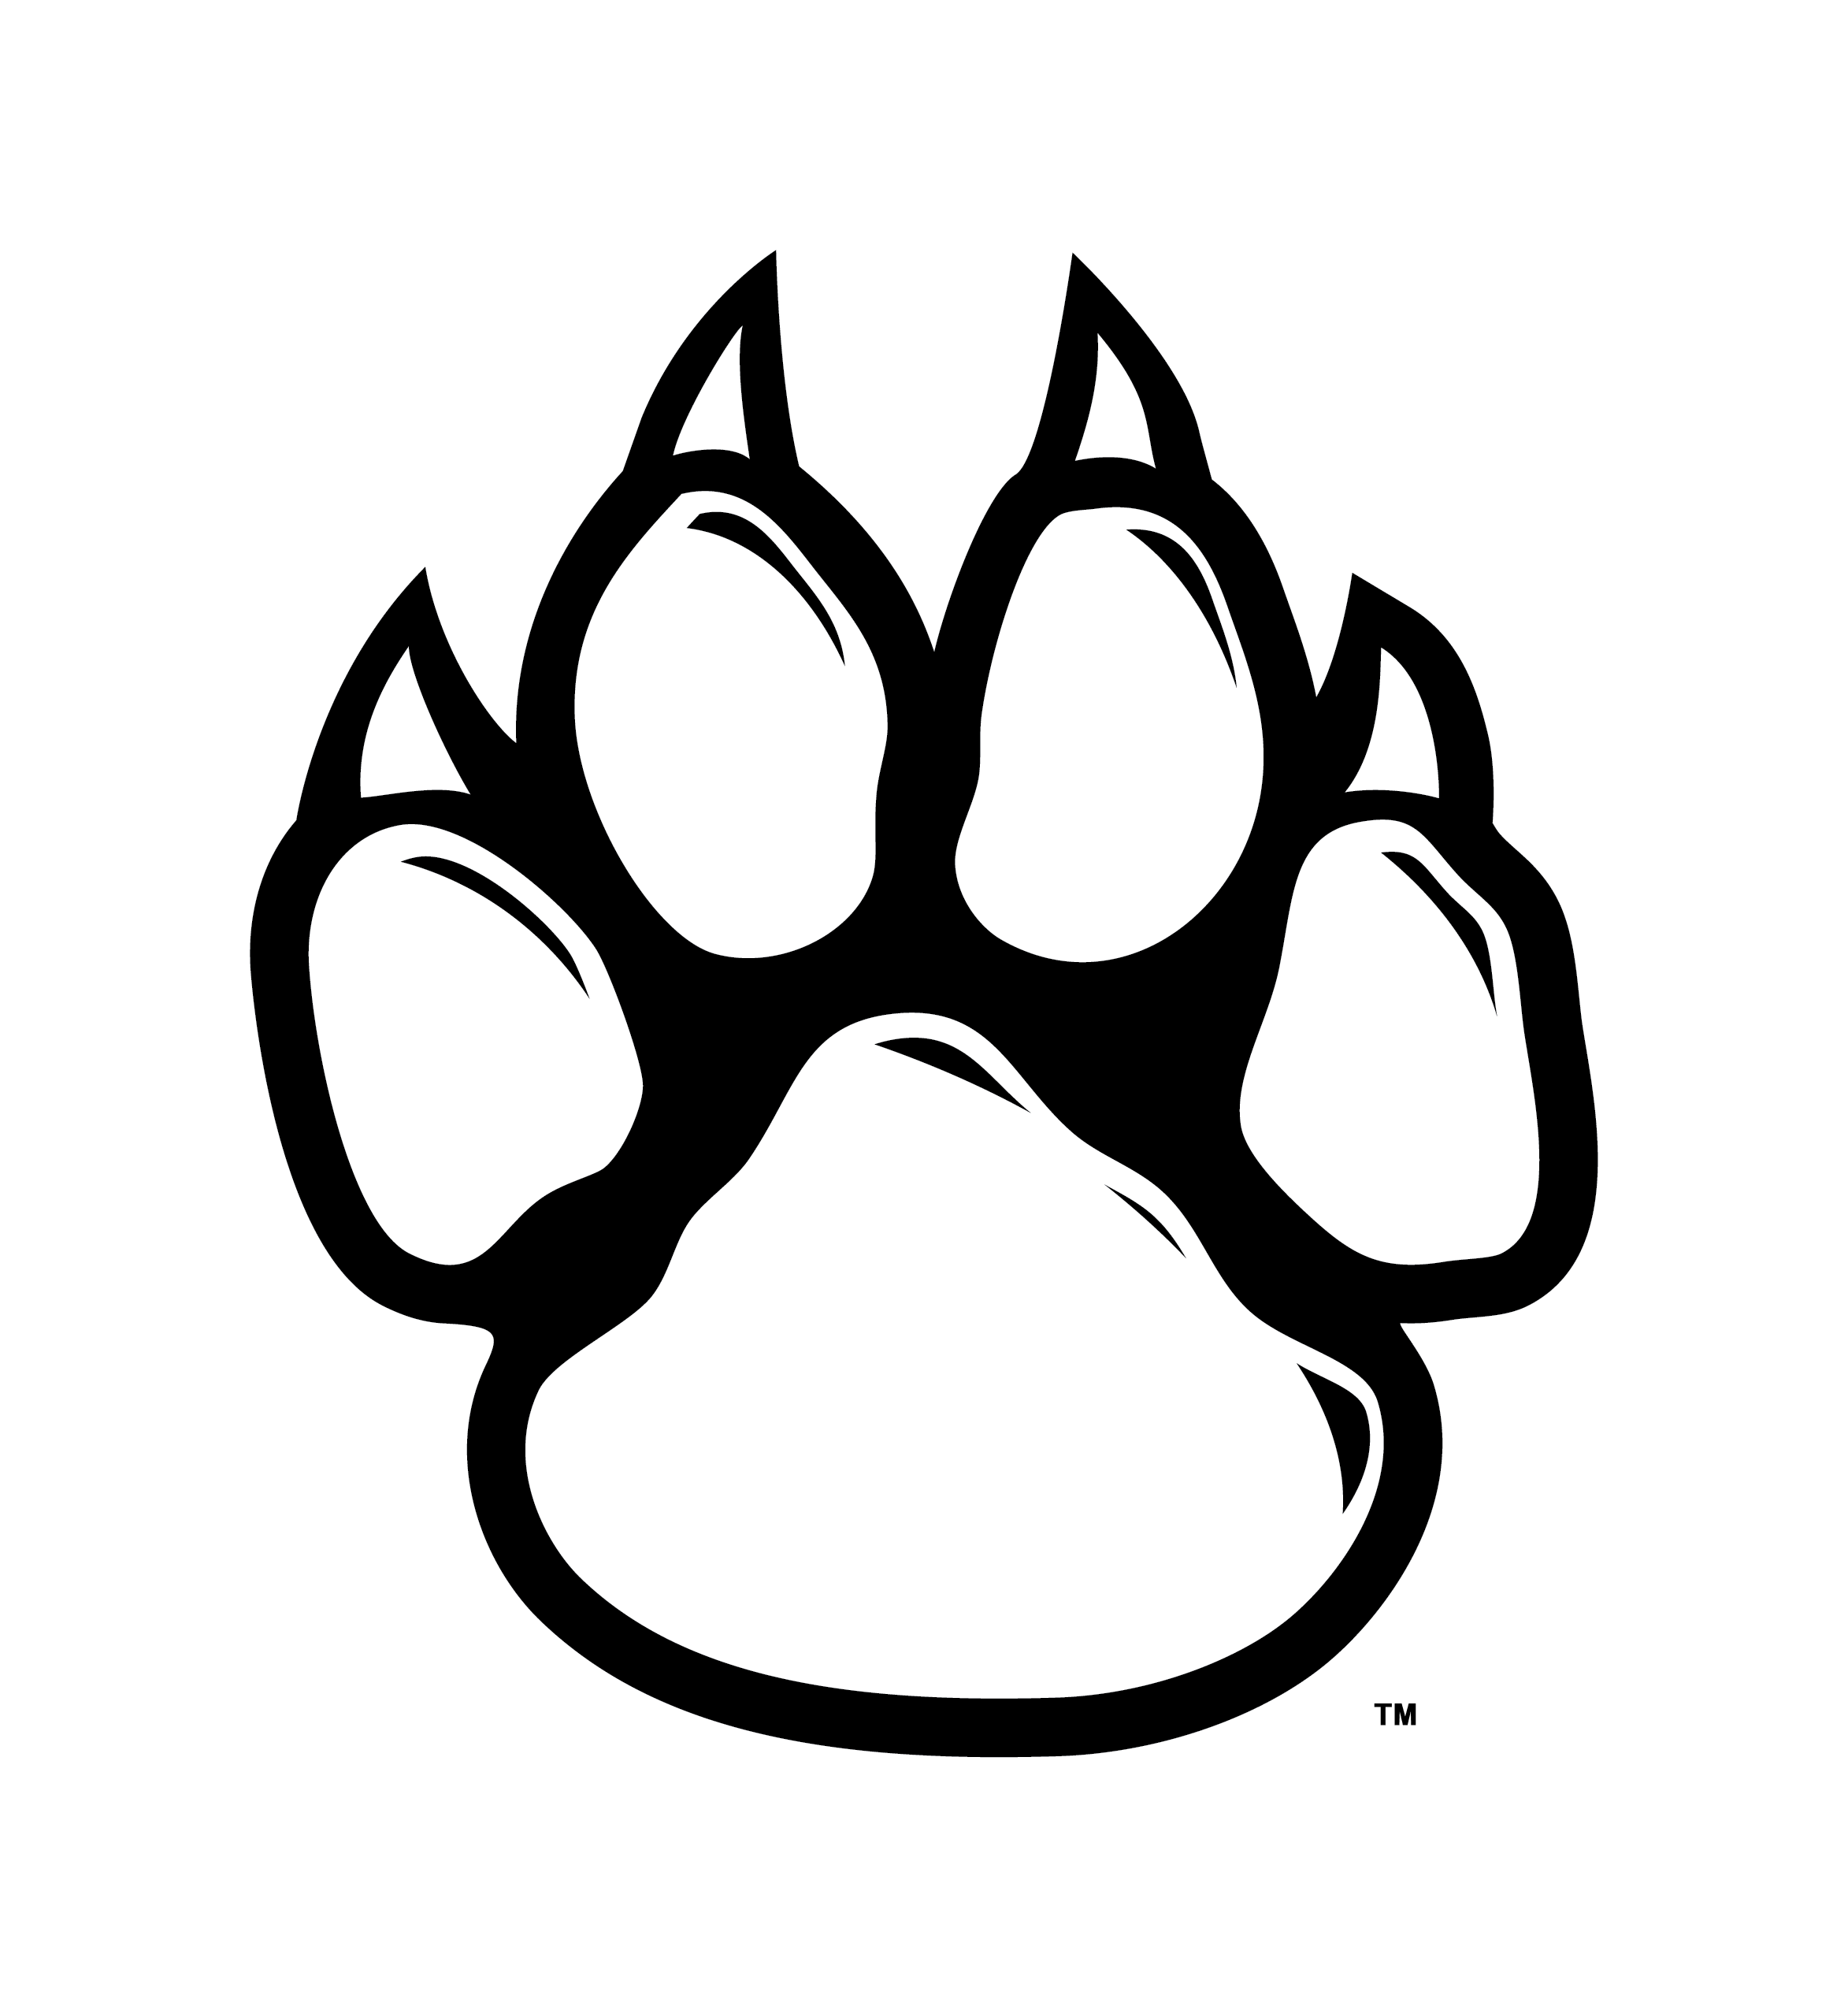 Paw print wolf. Arizona wildcat pawprint black